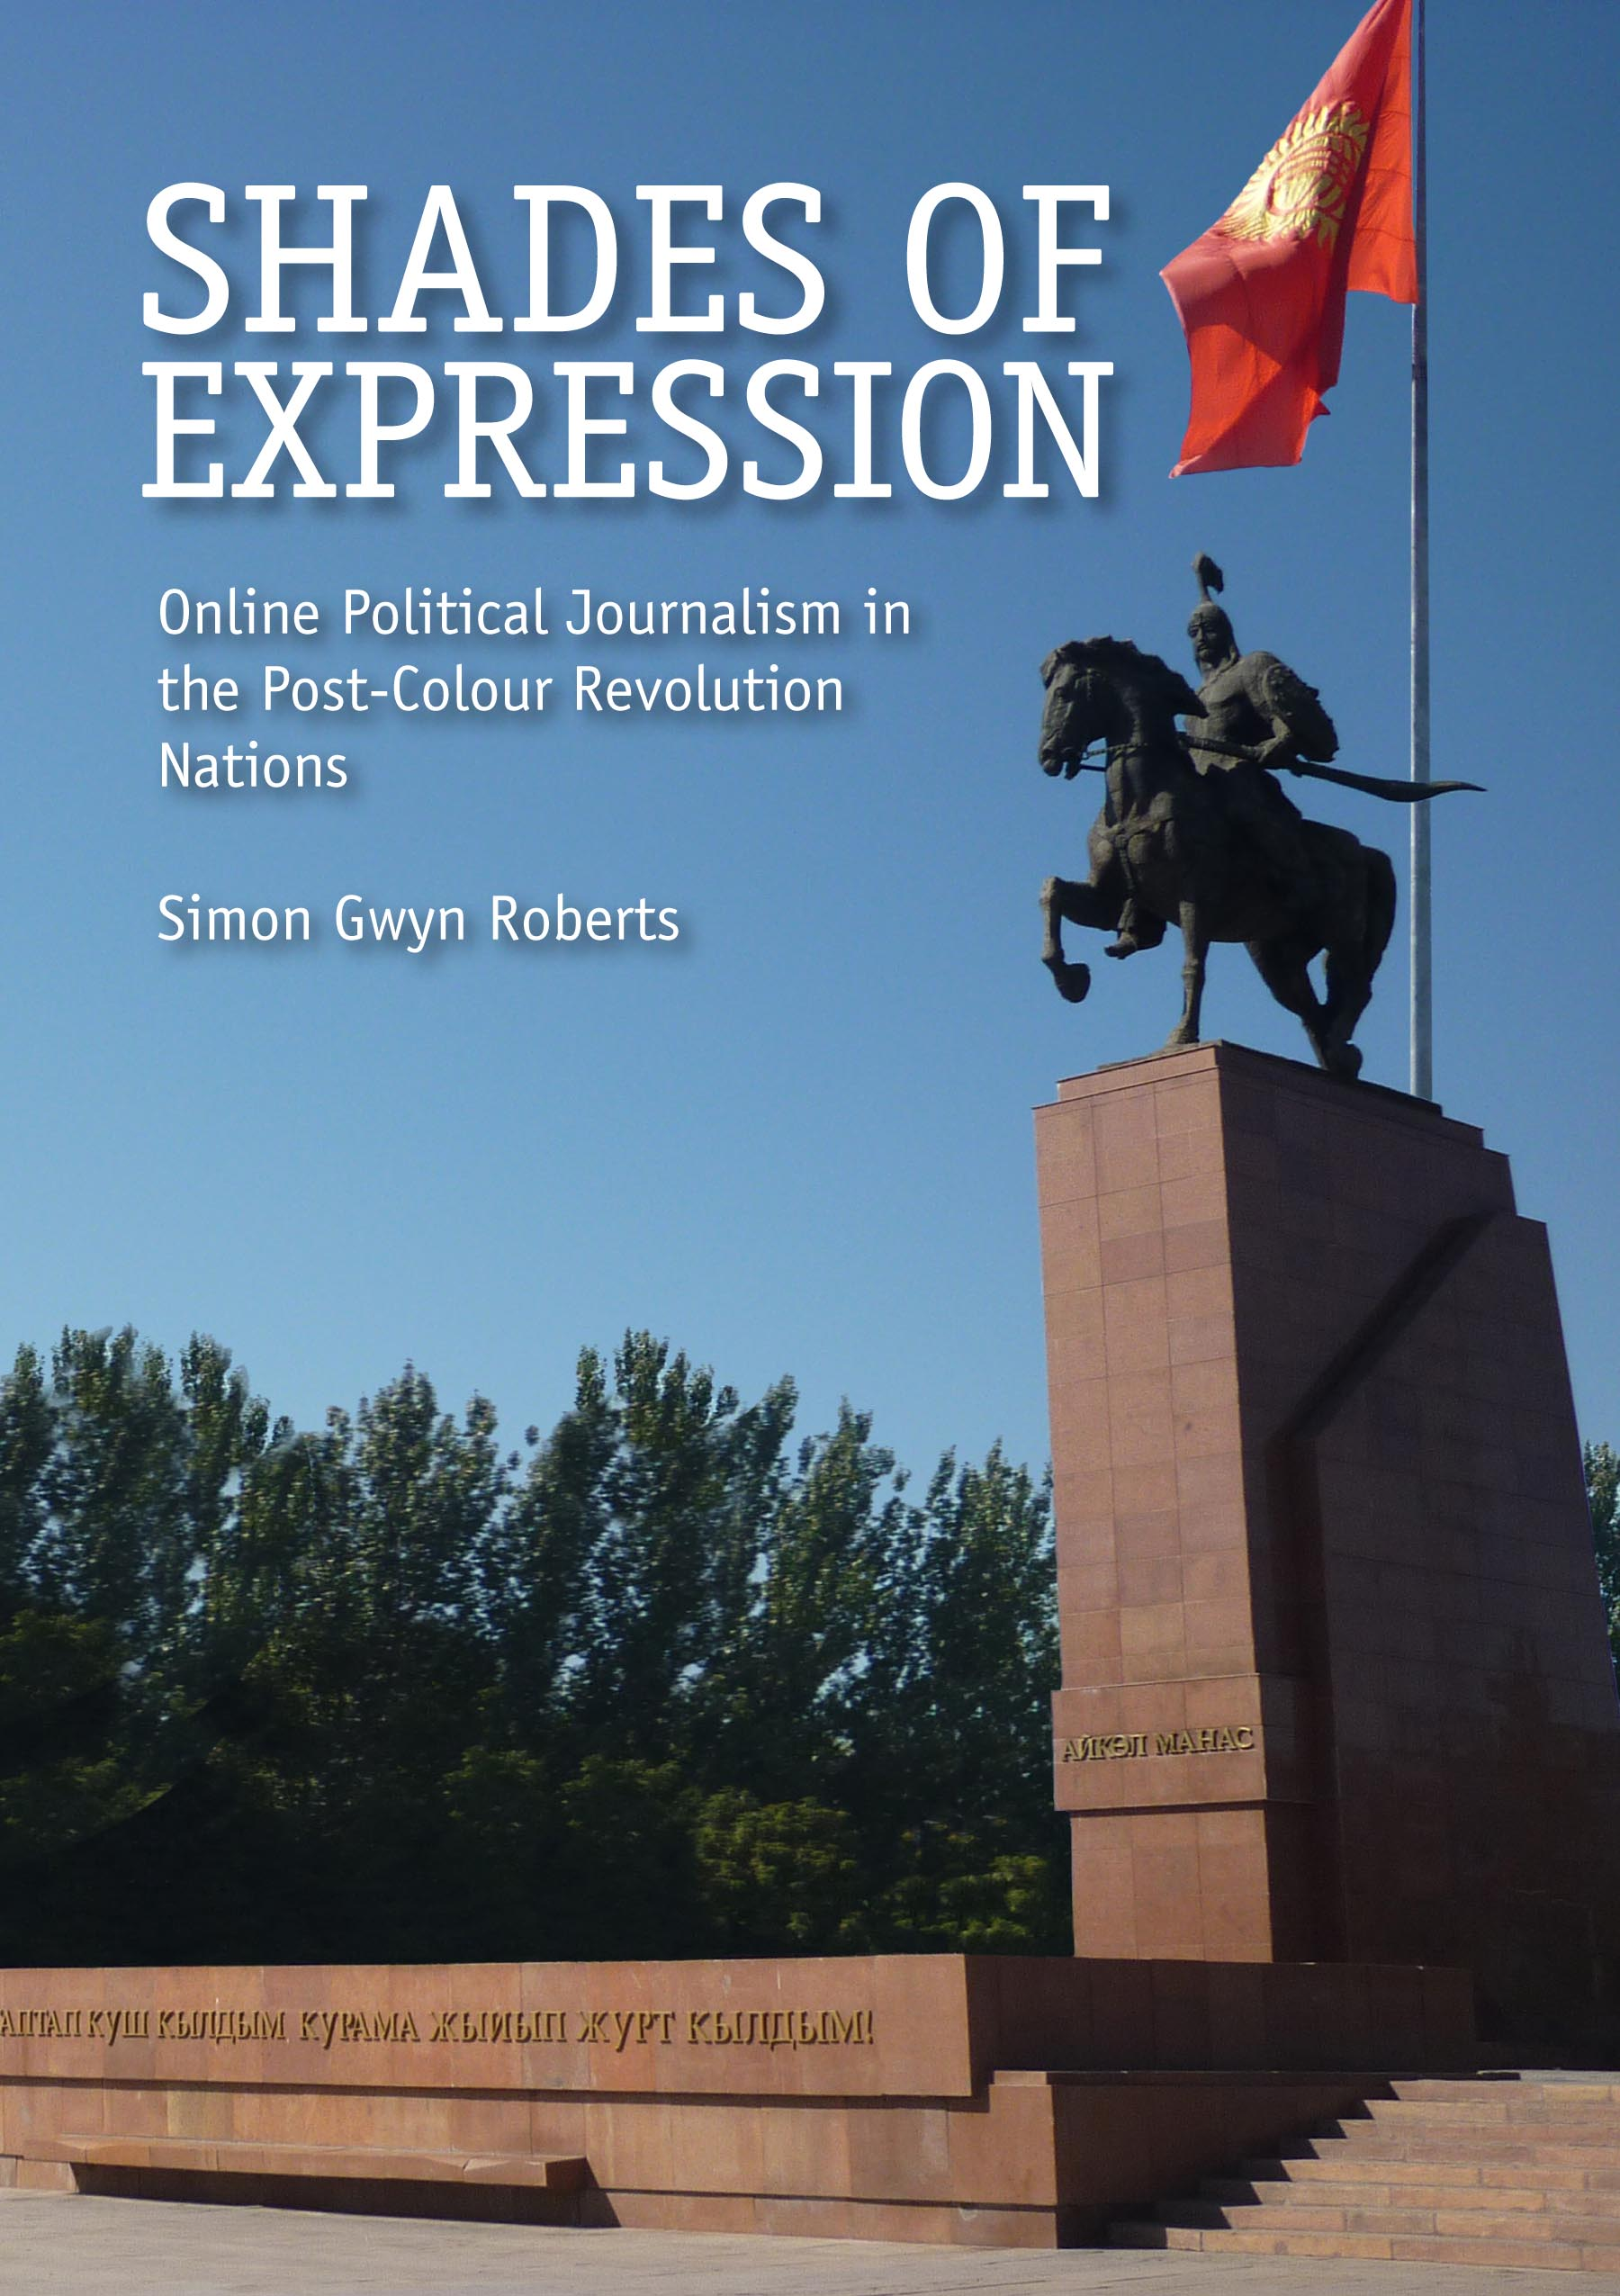 Shades of Expression: Online Political Journalism in the Post-Colour Revolution Nations